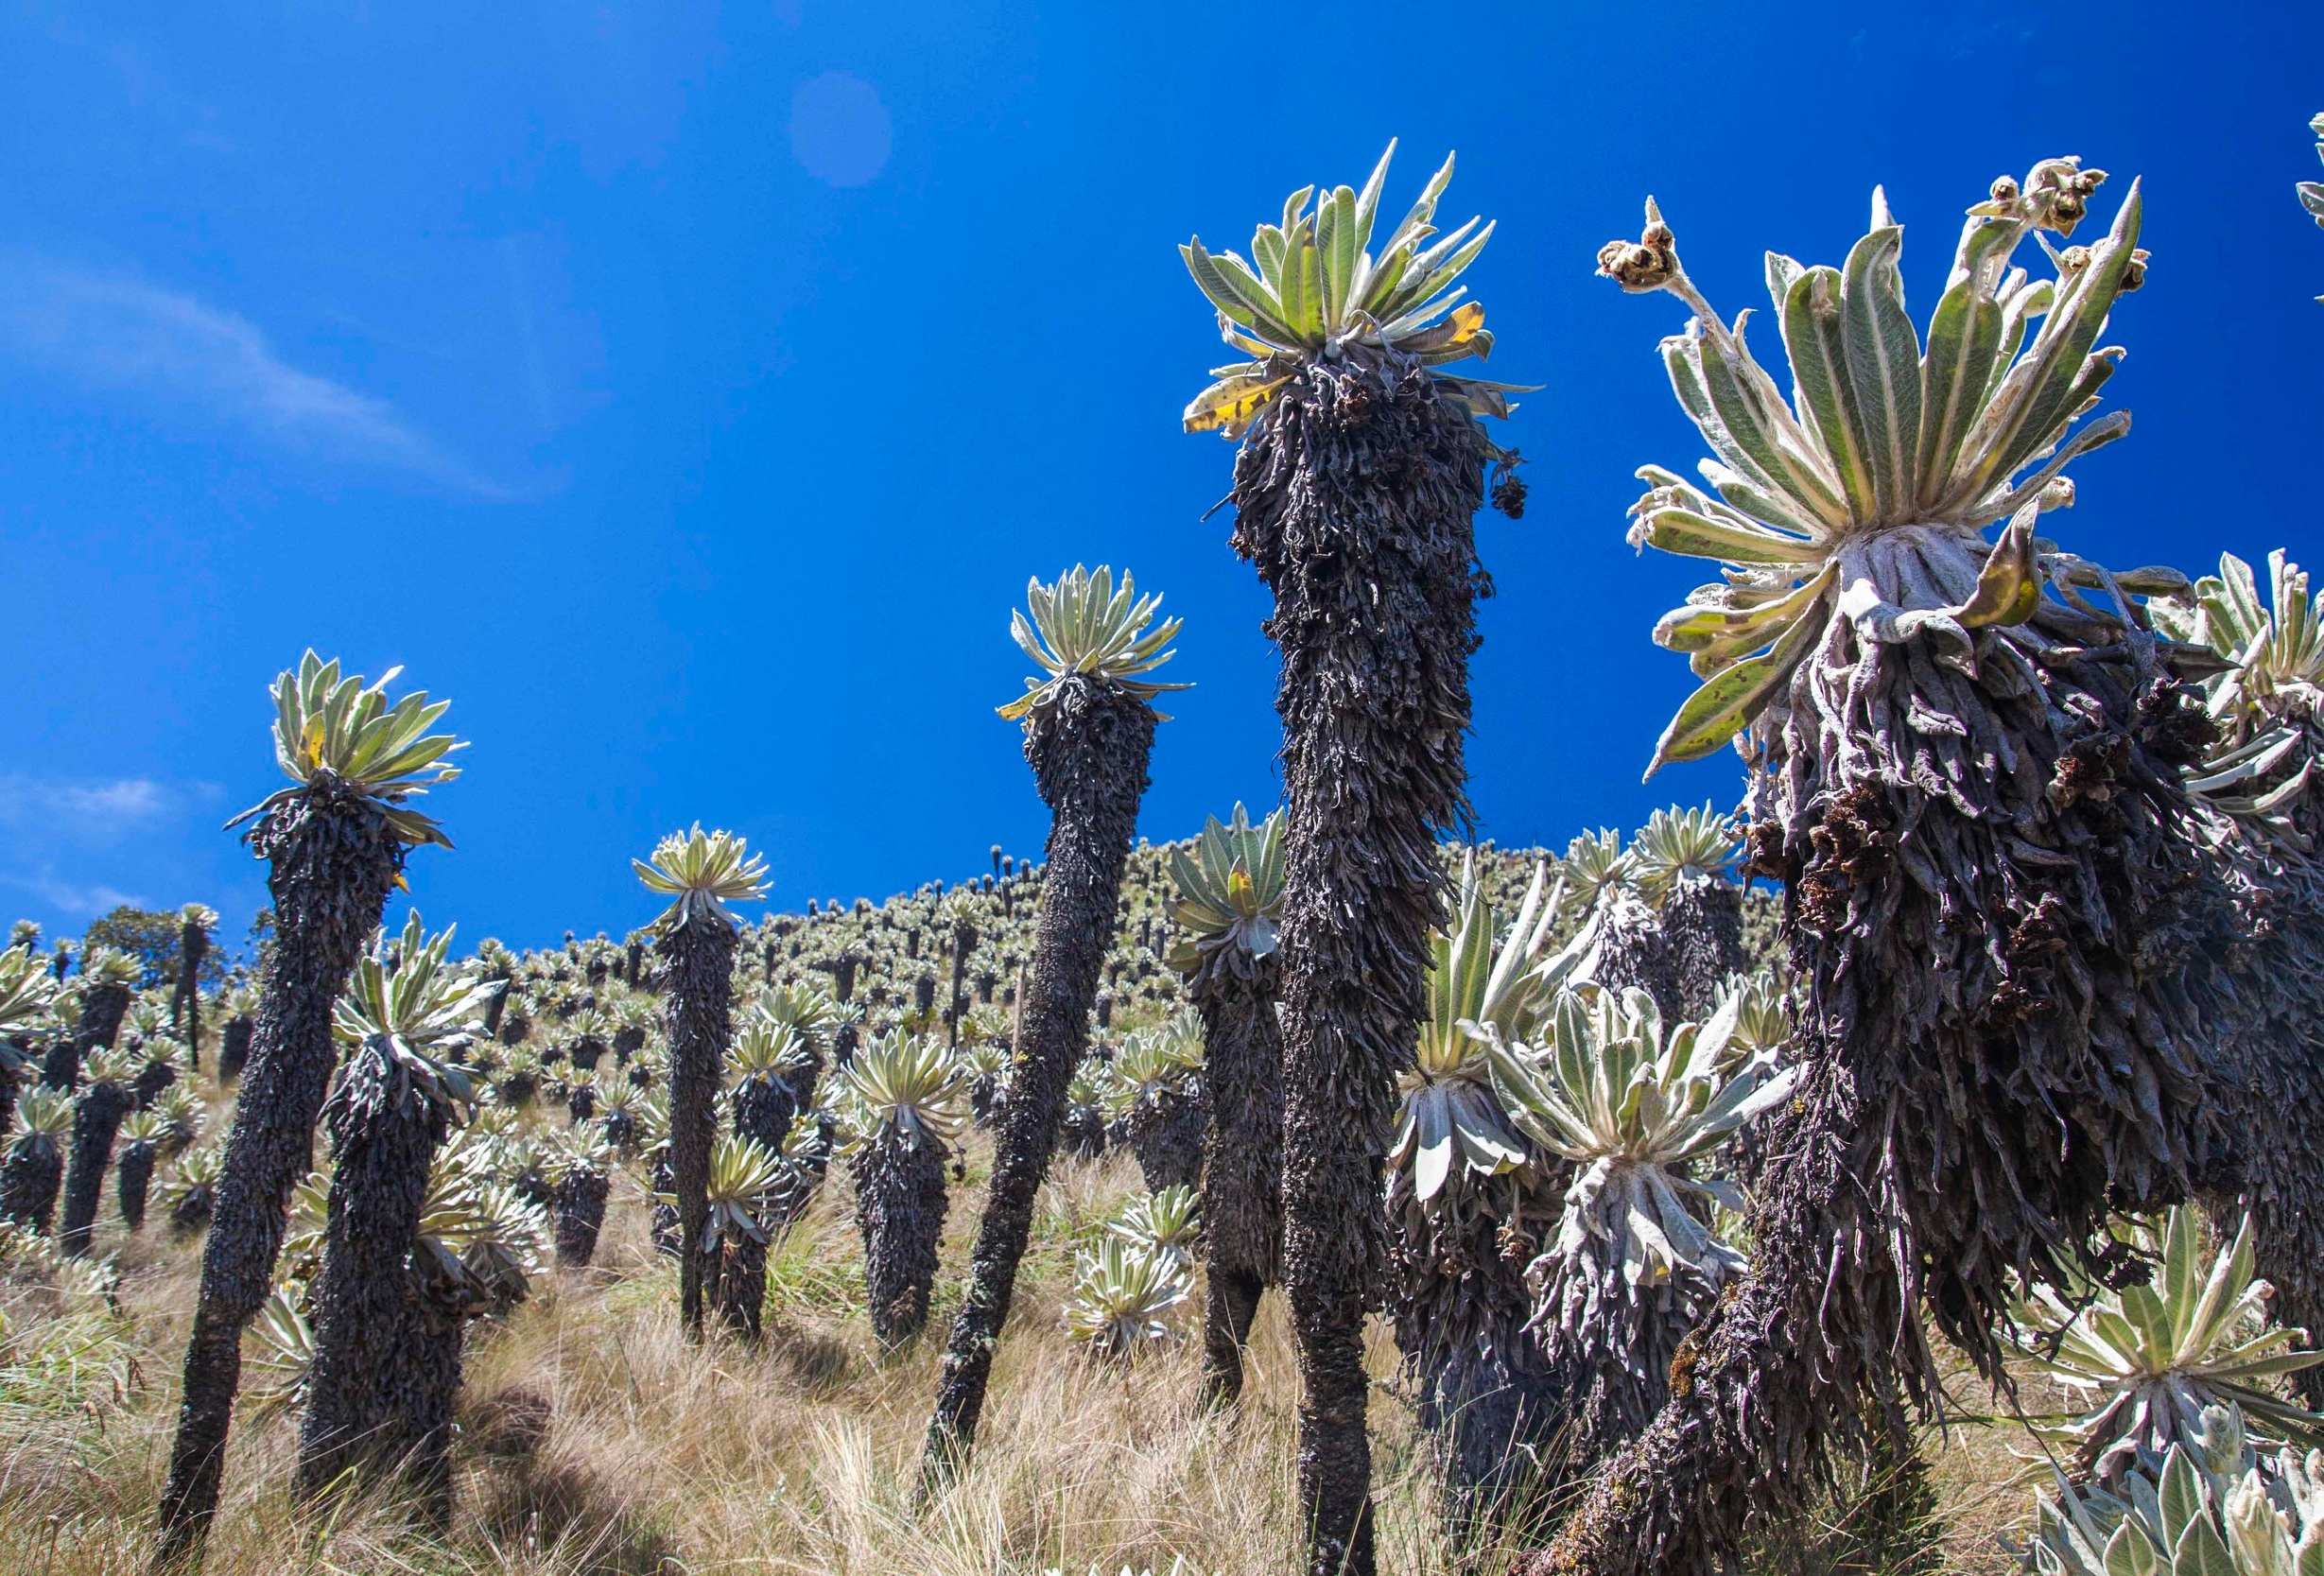 Frailejones+and+paramo+with+blue+sky+in+El+Angel+Ecological+Preserve%2C+Ecuador